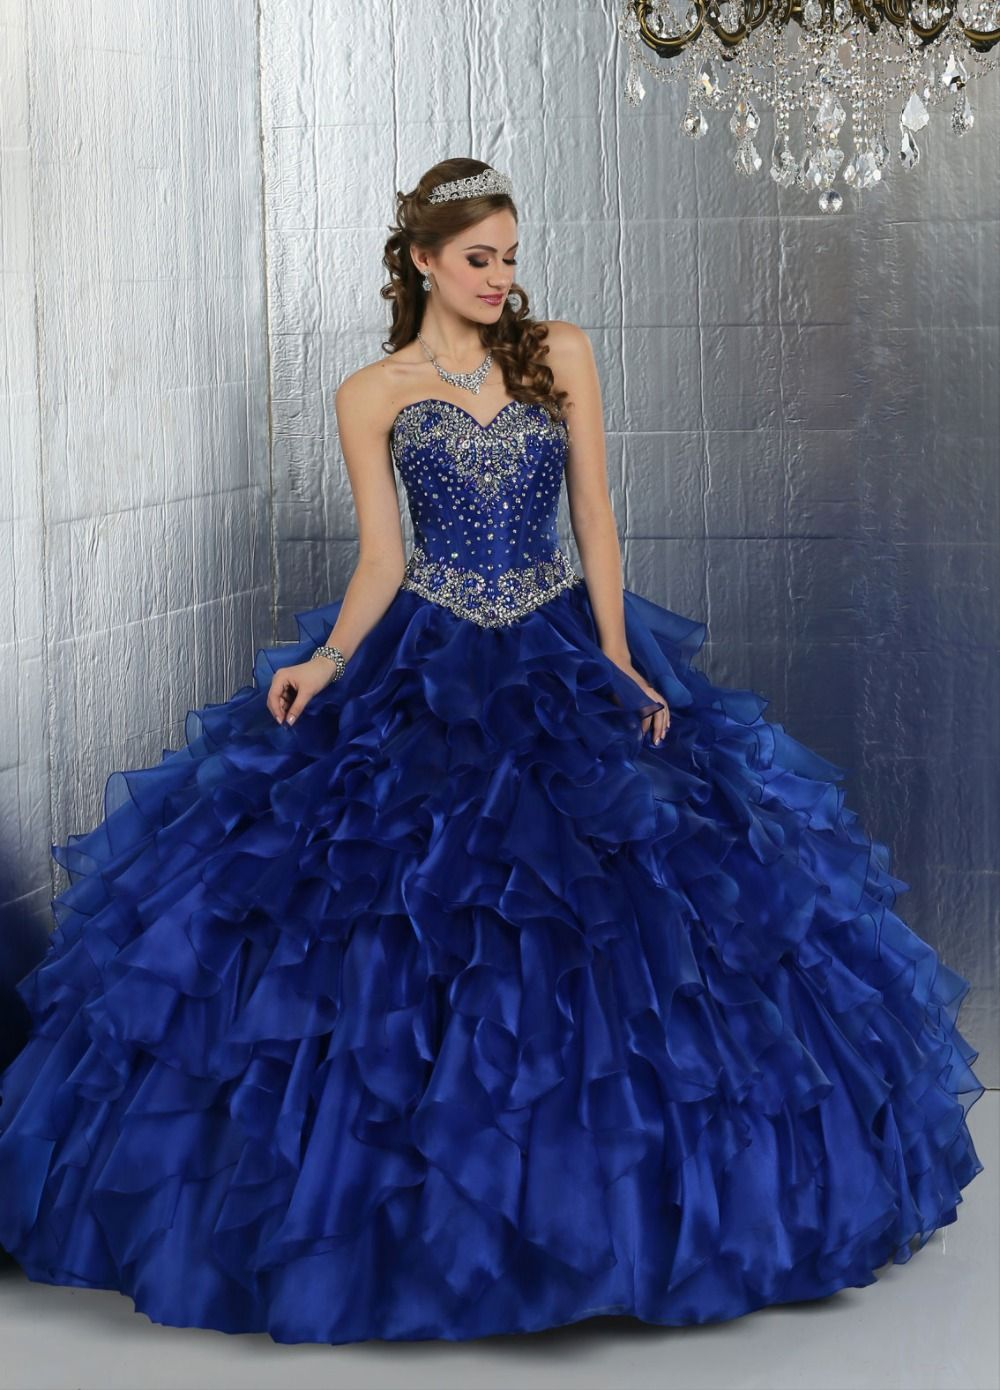 355cb4543c8 Royal Blue Sweetheart Elegant Fashionable Quinceanera Dresses in for 2015  Summer. Vestidos Azules De Quinceañera